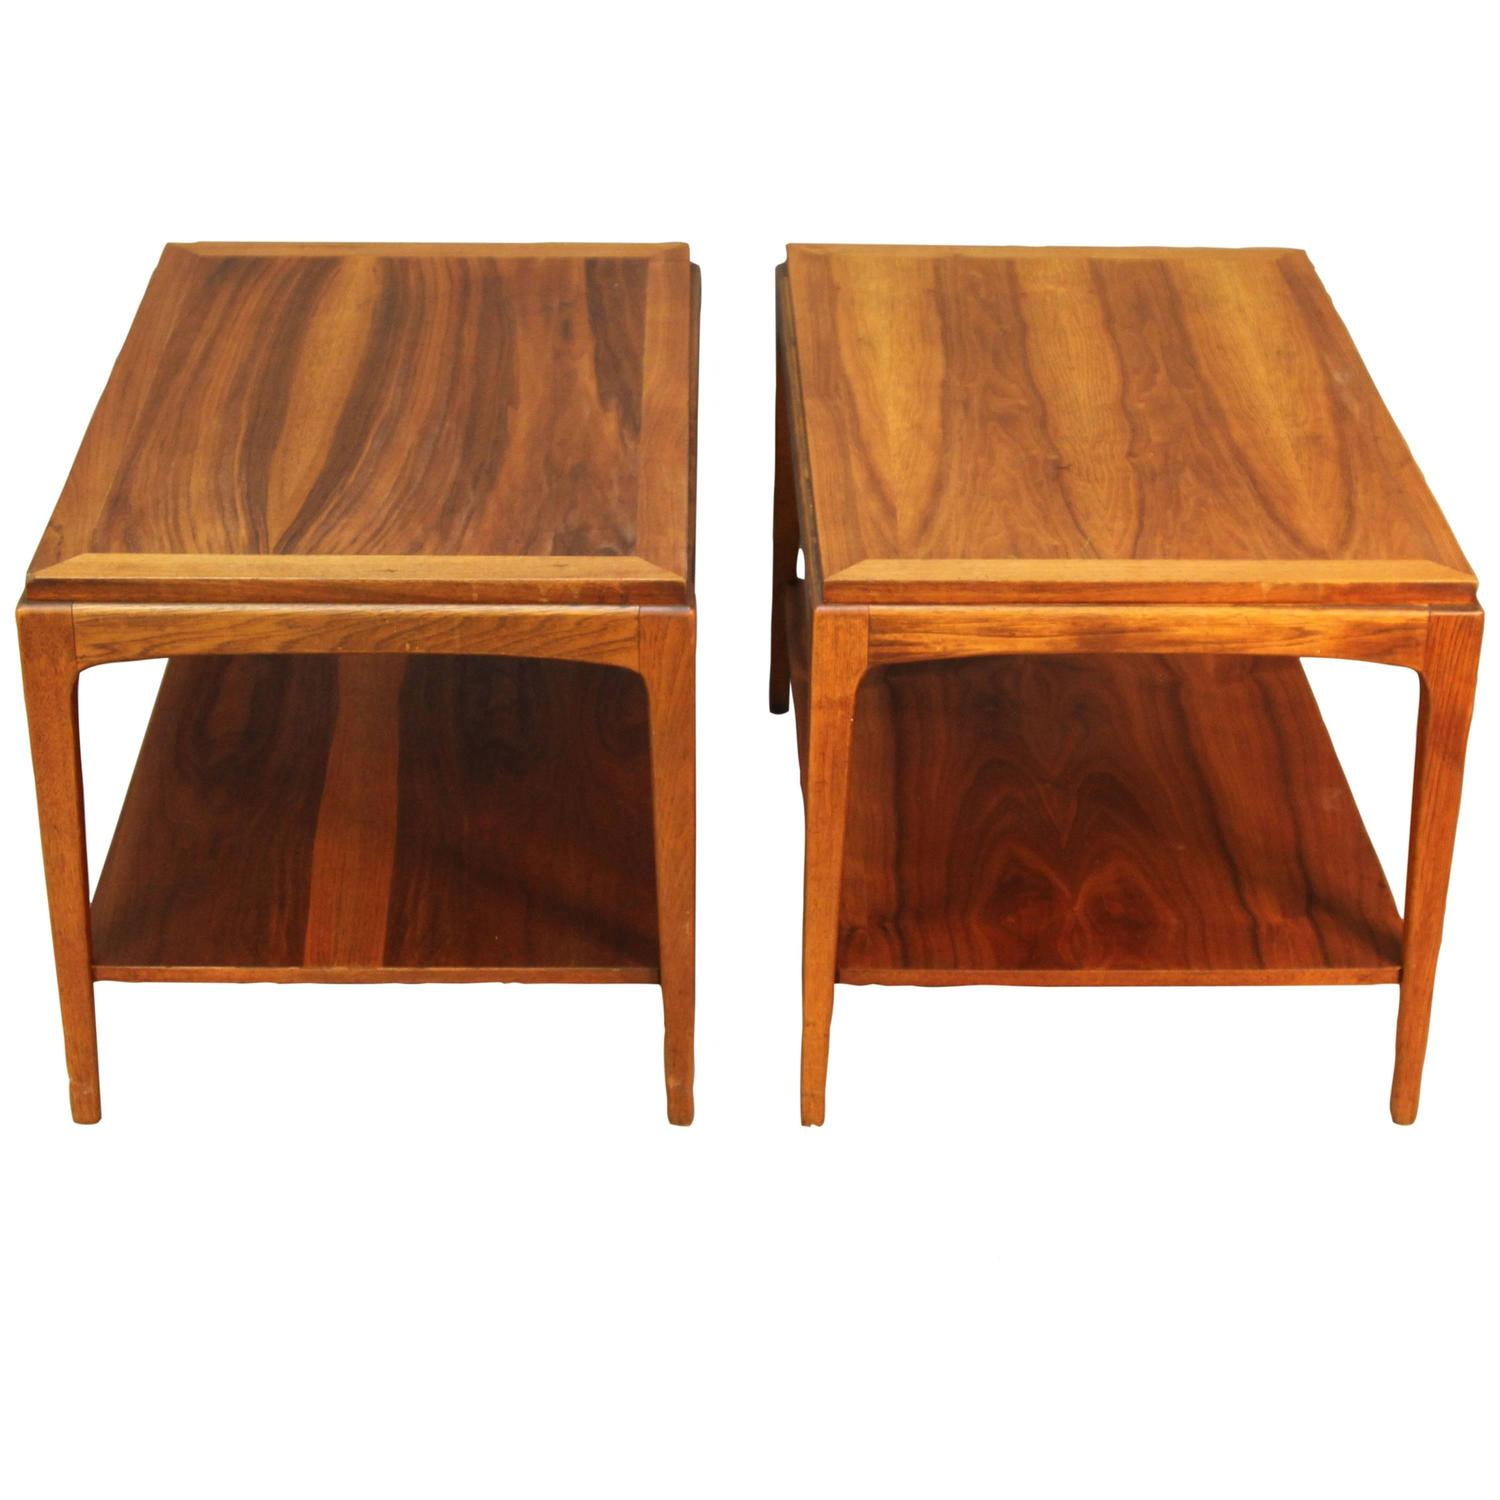 Pair Of Lane Walnut End Tables For Sale At 1stdibs